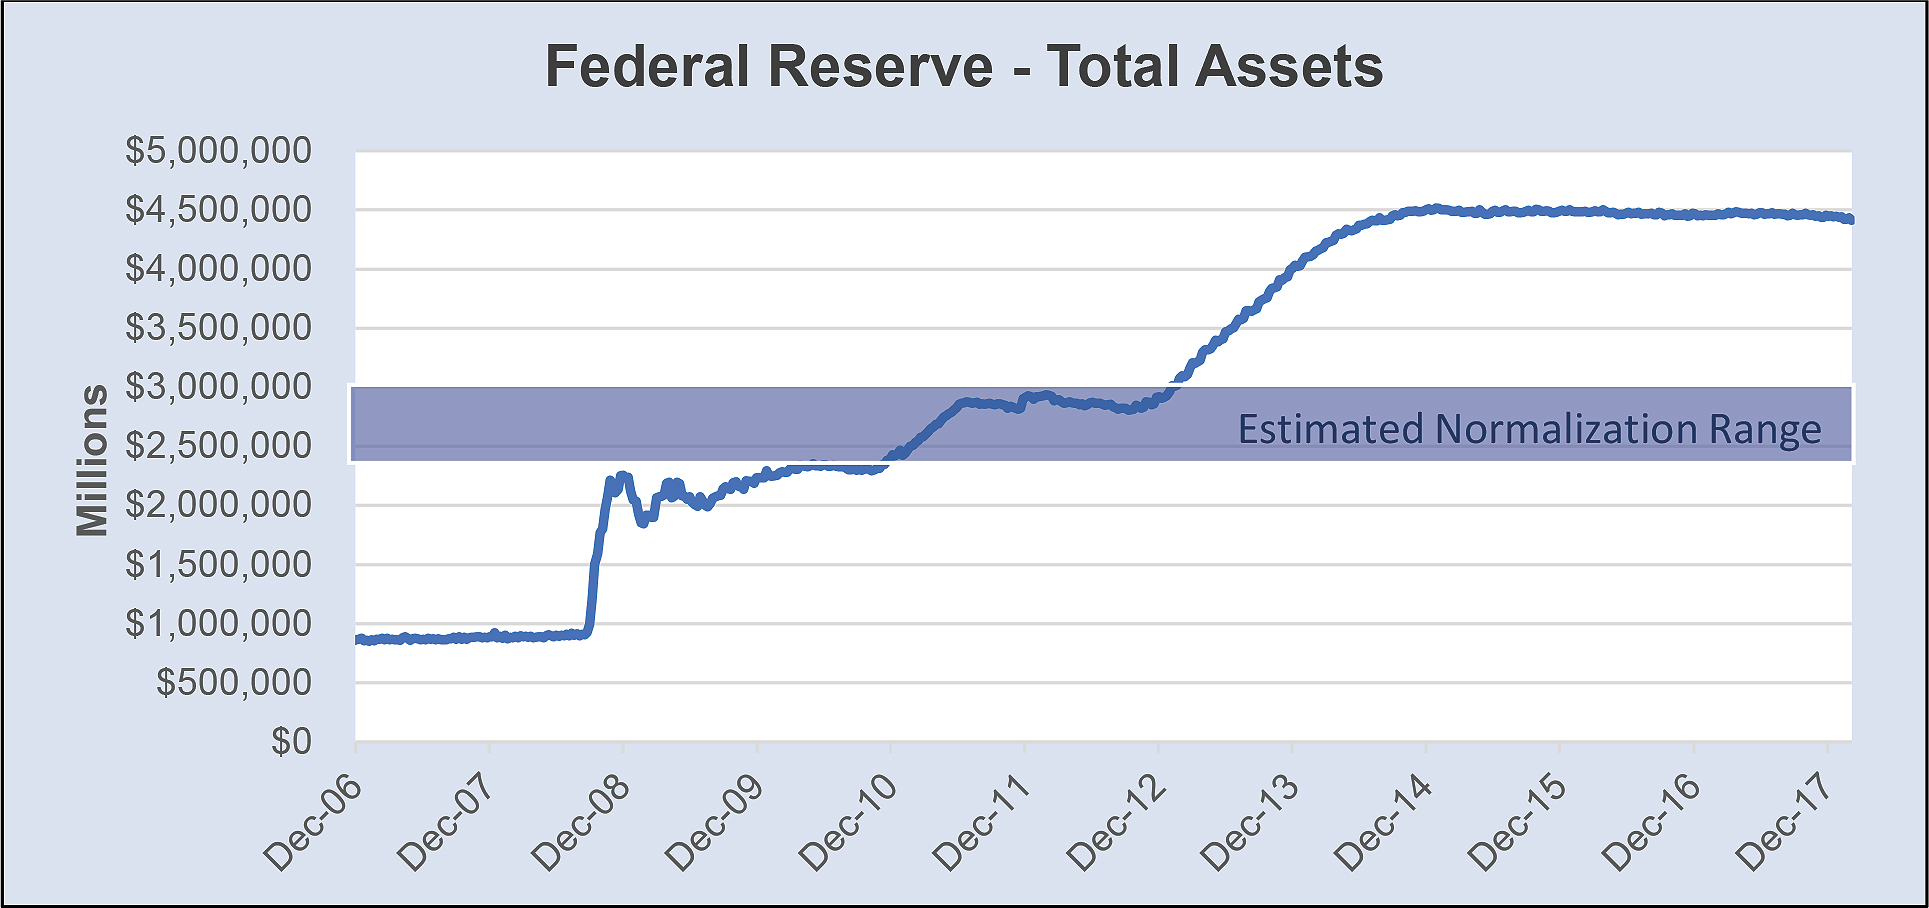 Federal Reserve - Total Assets